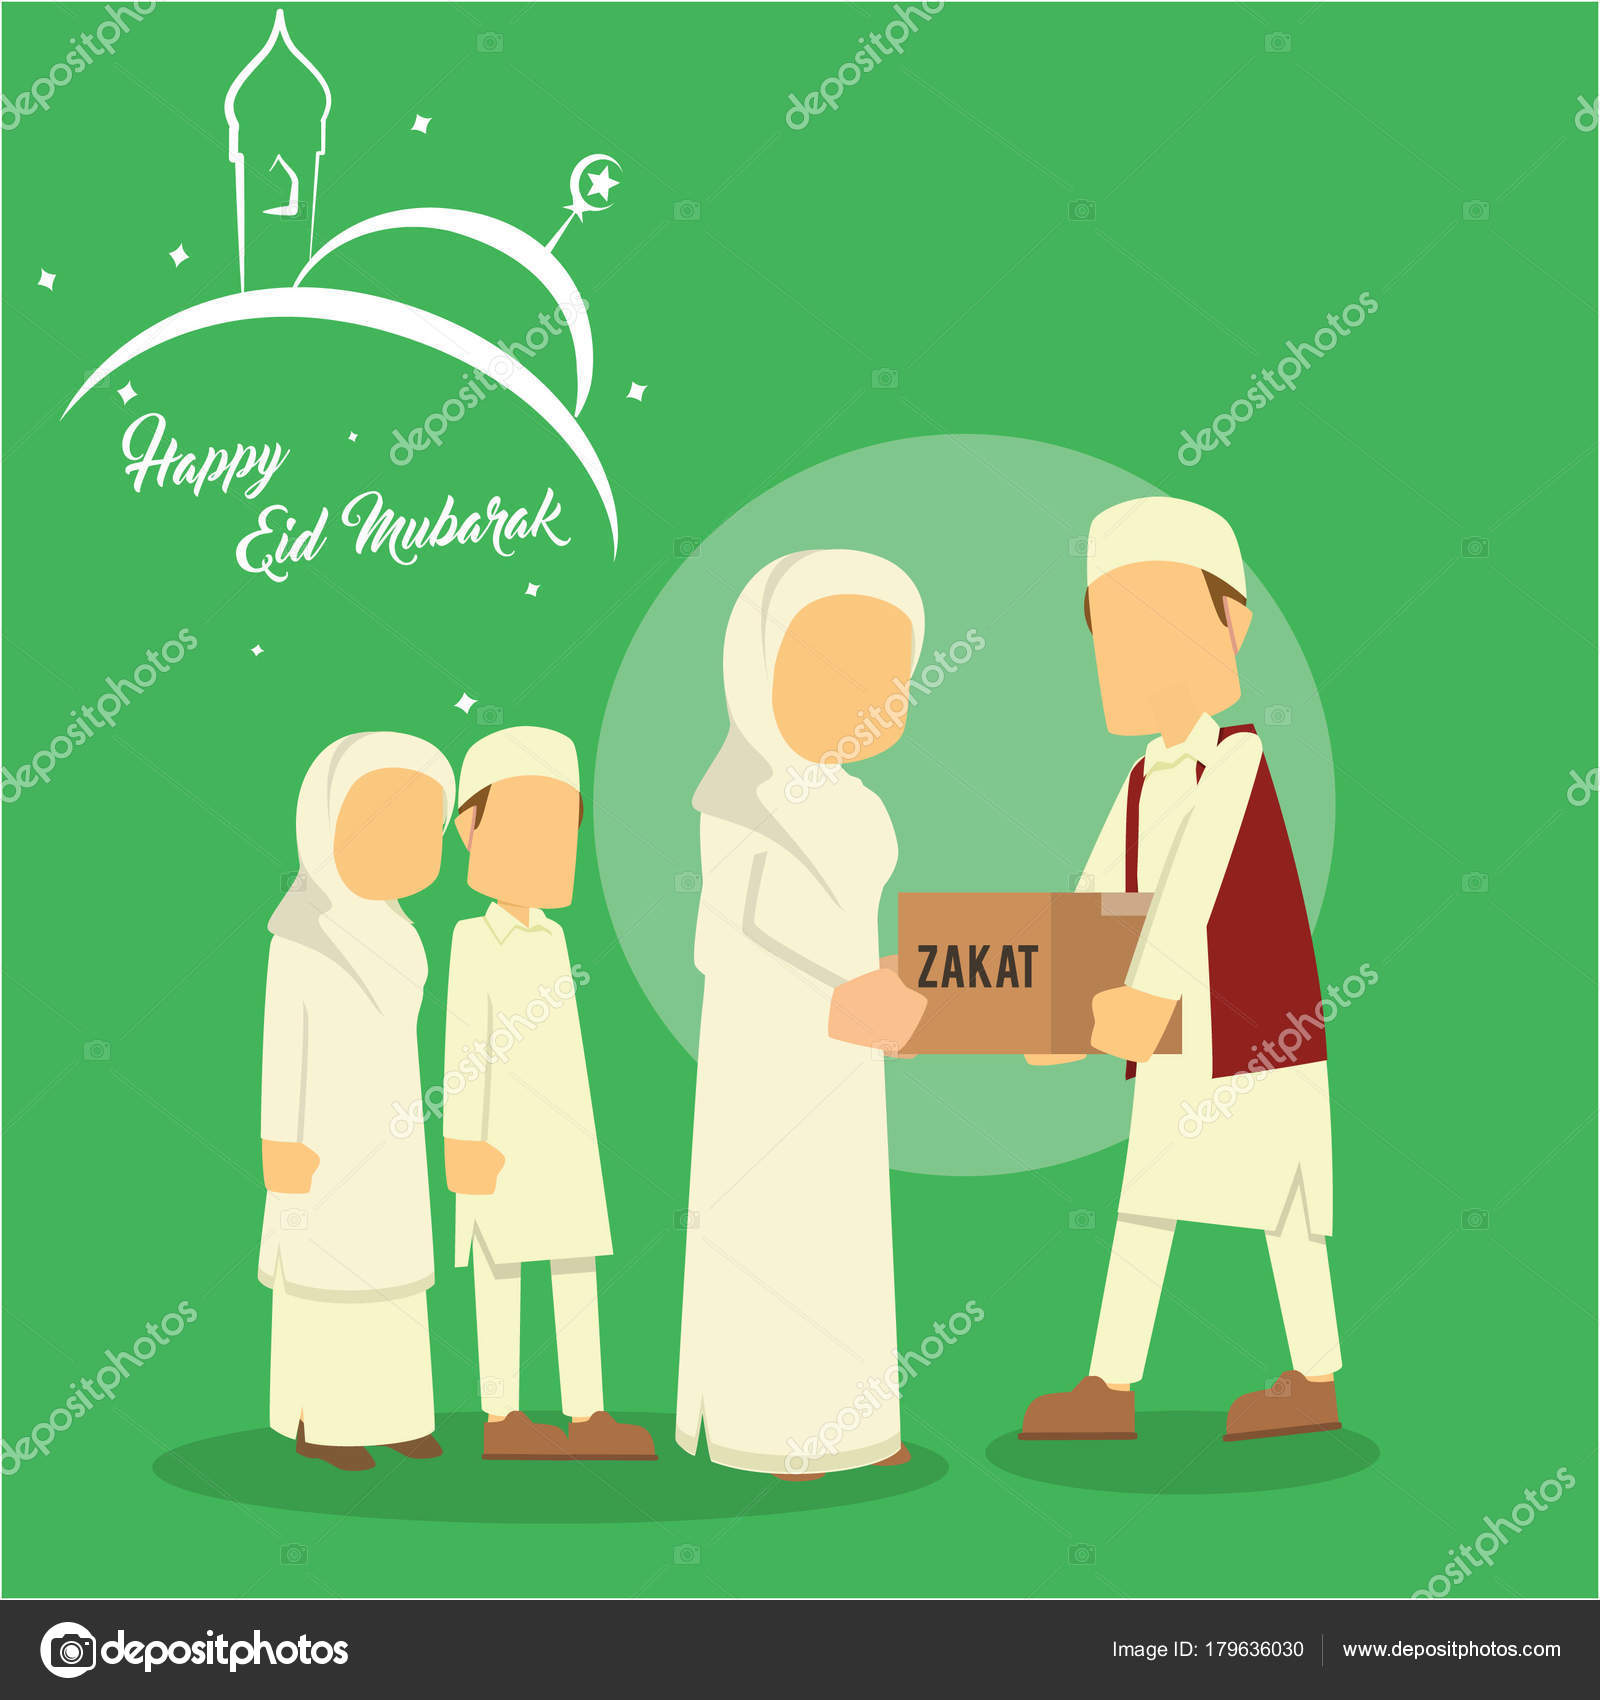 ᐈ zakat clip art stock pictures royalty free zakat illustrations download on depositphotos https depositphotos com 179636030 stock illustration muslim man giving zakat orphans html